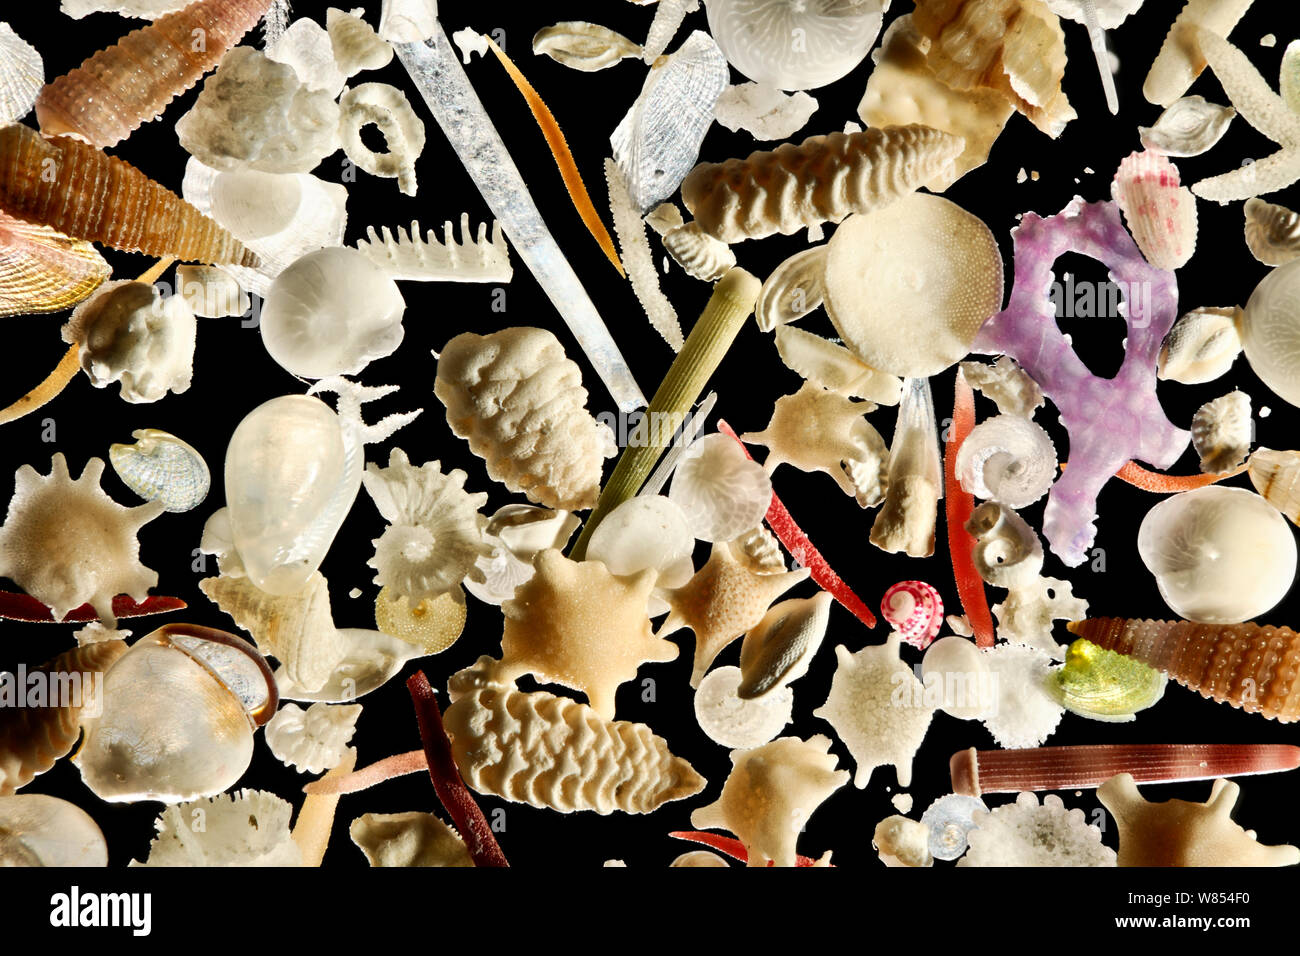 The white carbonate sand from Raja Ampat, Indonesia, is generated by a vast diversity of organisms: e.g. foraminifera, sponges, brachiopods, echinoderms, bryozoa and mollusks. Diagonal of frame approx. 8 mm  Digital focus stacking image Stock Photo